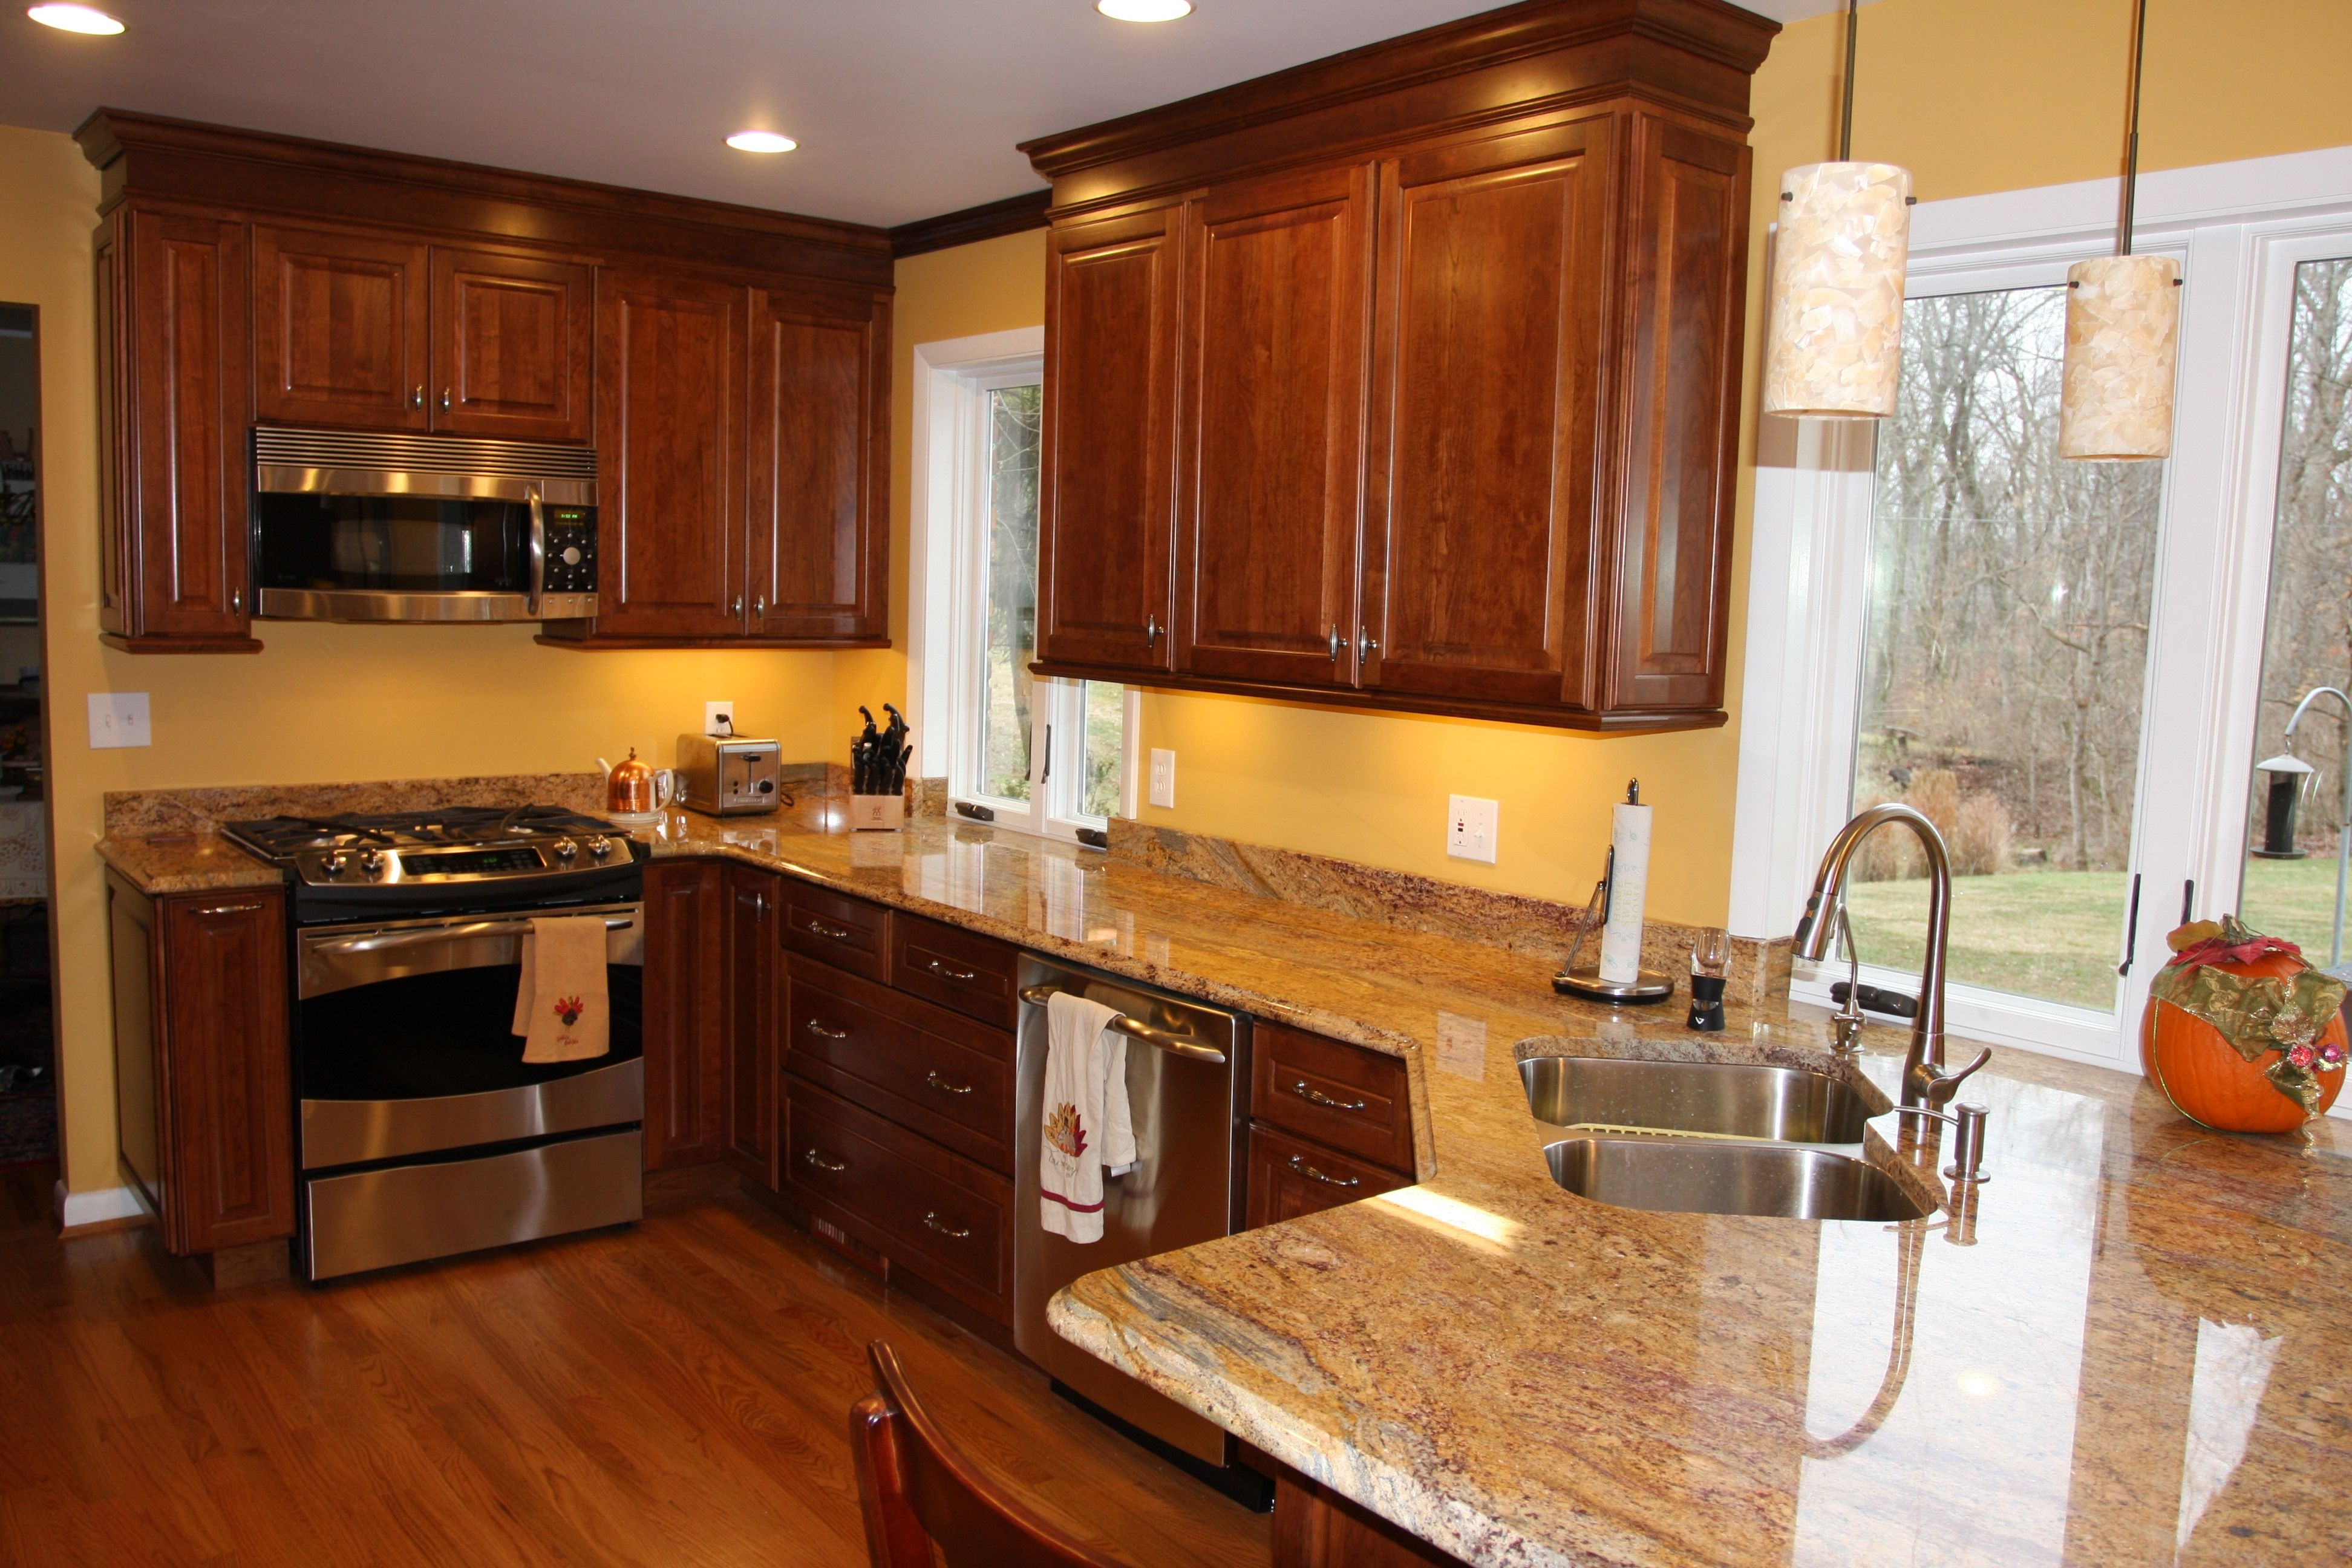 Best Kitchen Wall Color With Dark Oak Cabinets With Images 400 x 300